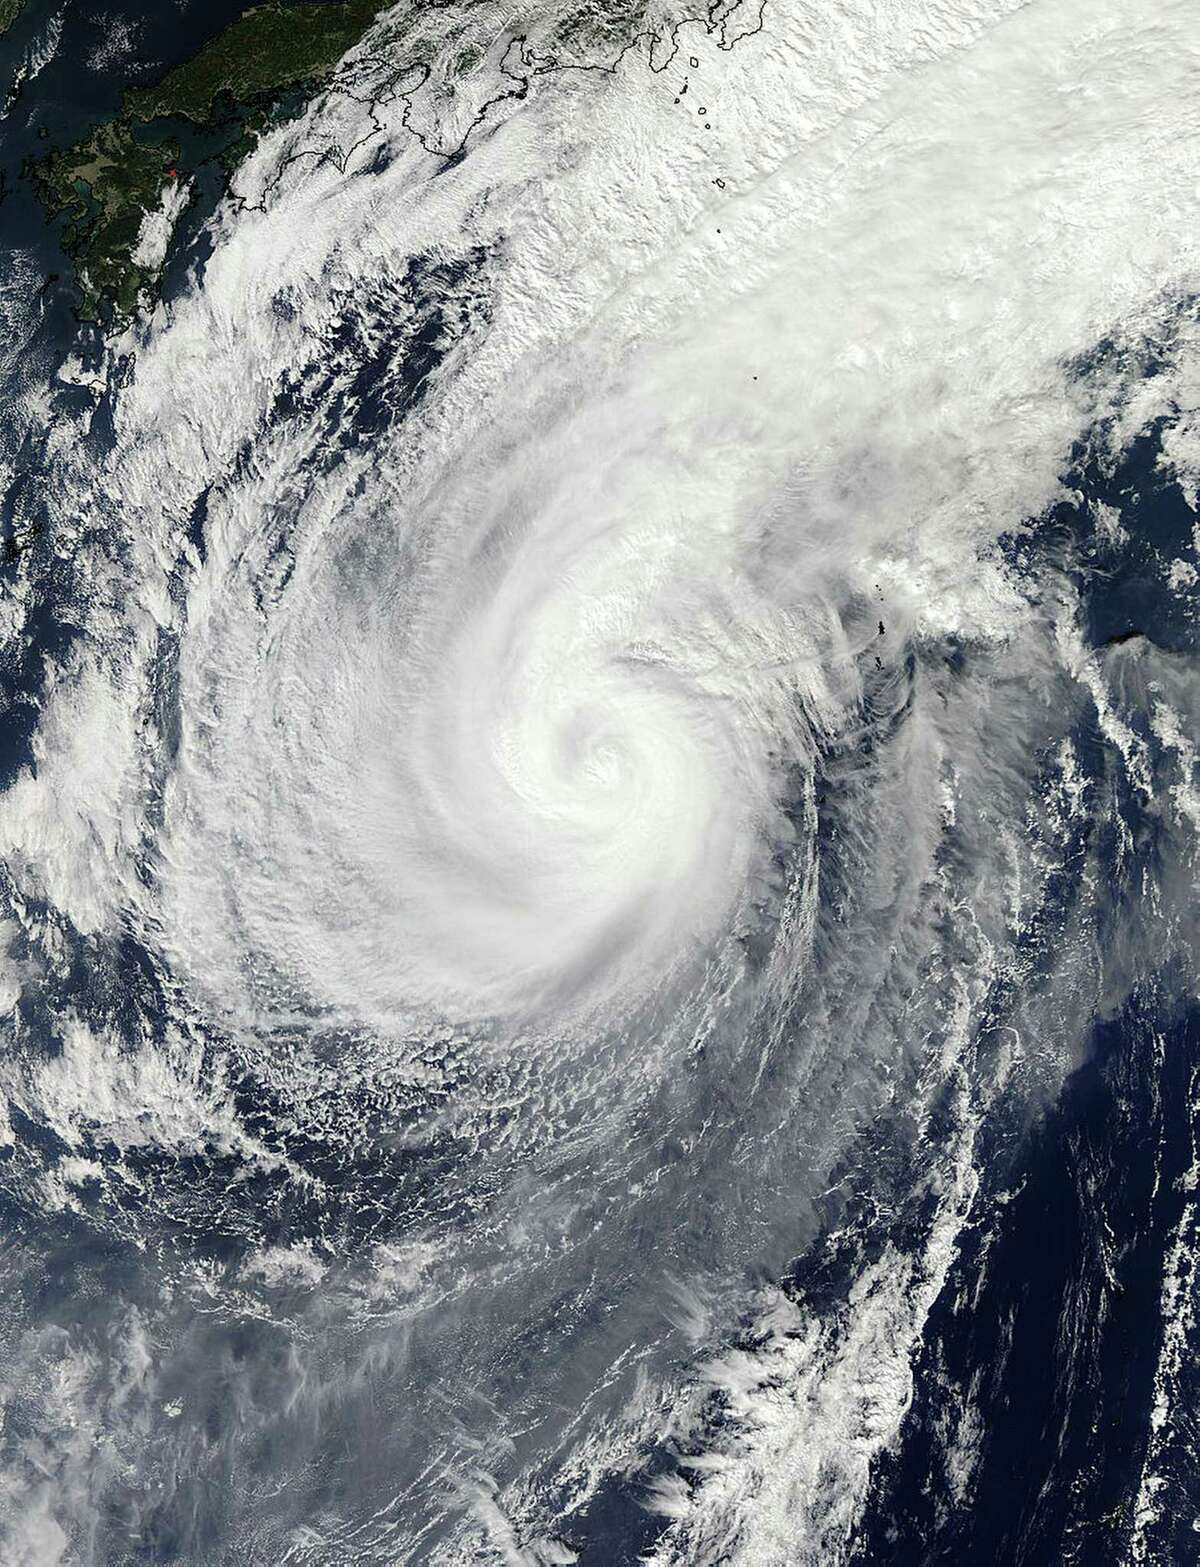 This Nov. 5, 2014 photo provided by NASA shows a picture captured by NASA's Aqua satellite of Typhoon Nuri. Weather forecasters say an explosive storm, a remnant of Typhoon Nuri, surpassing the intensity of 2012's Superstorm Sandy is heading toward the northern Pacific Ocean and expected to pass Alaska's Aleutian Islands over the weekend.